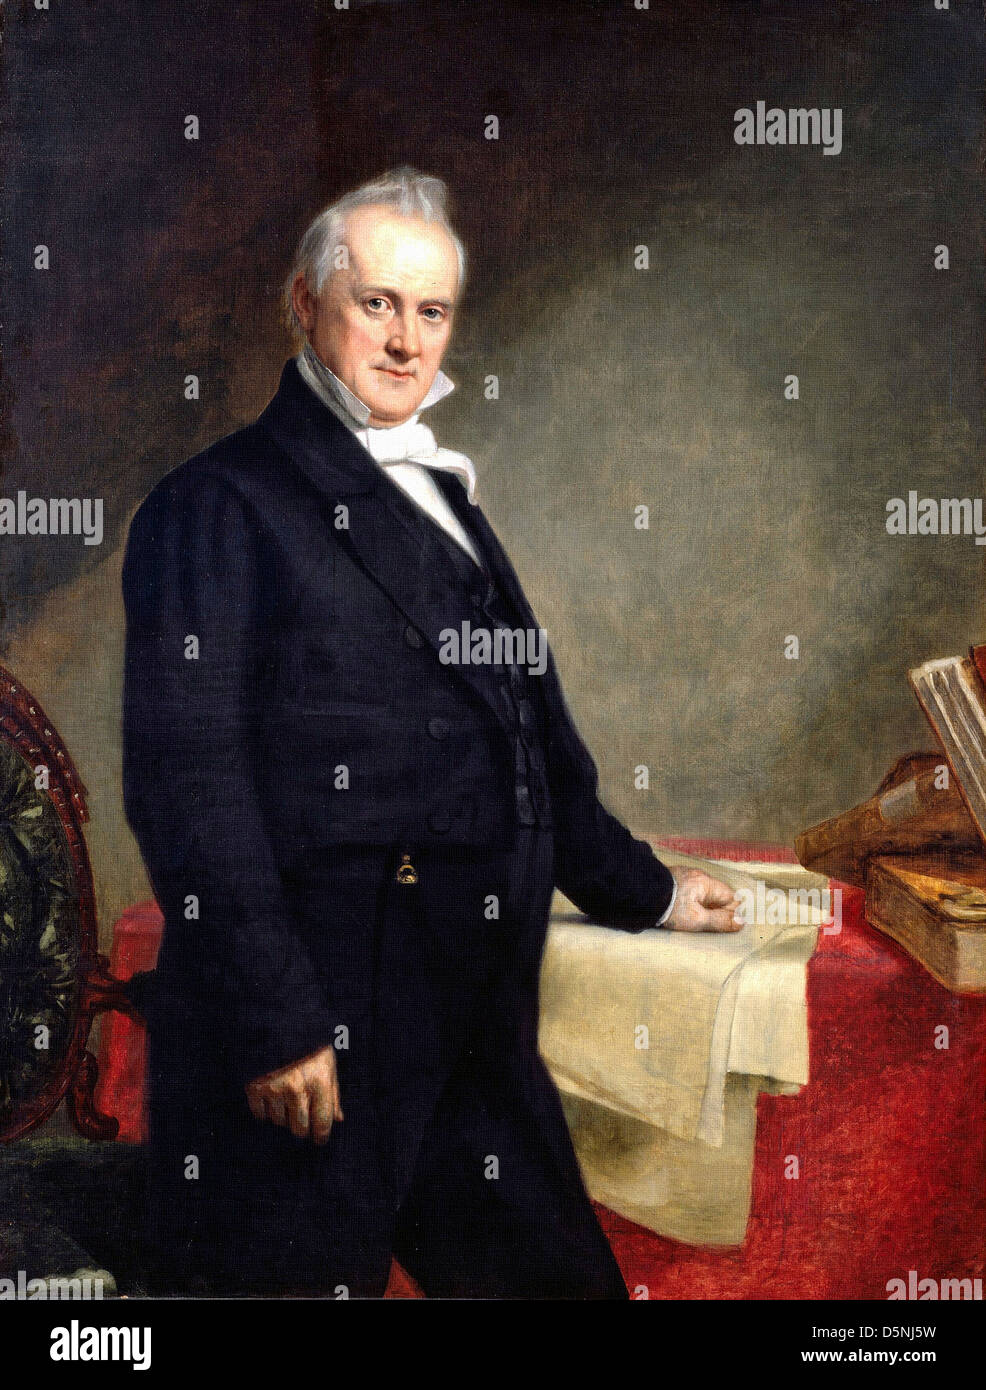 George Healy, Portrait of James Buchanan 1859 Oil on canvas. Smithonian National Portrait Gallery - Stock Image